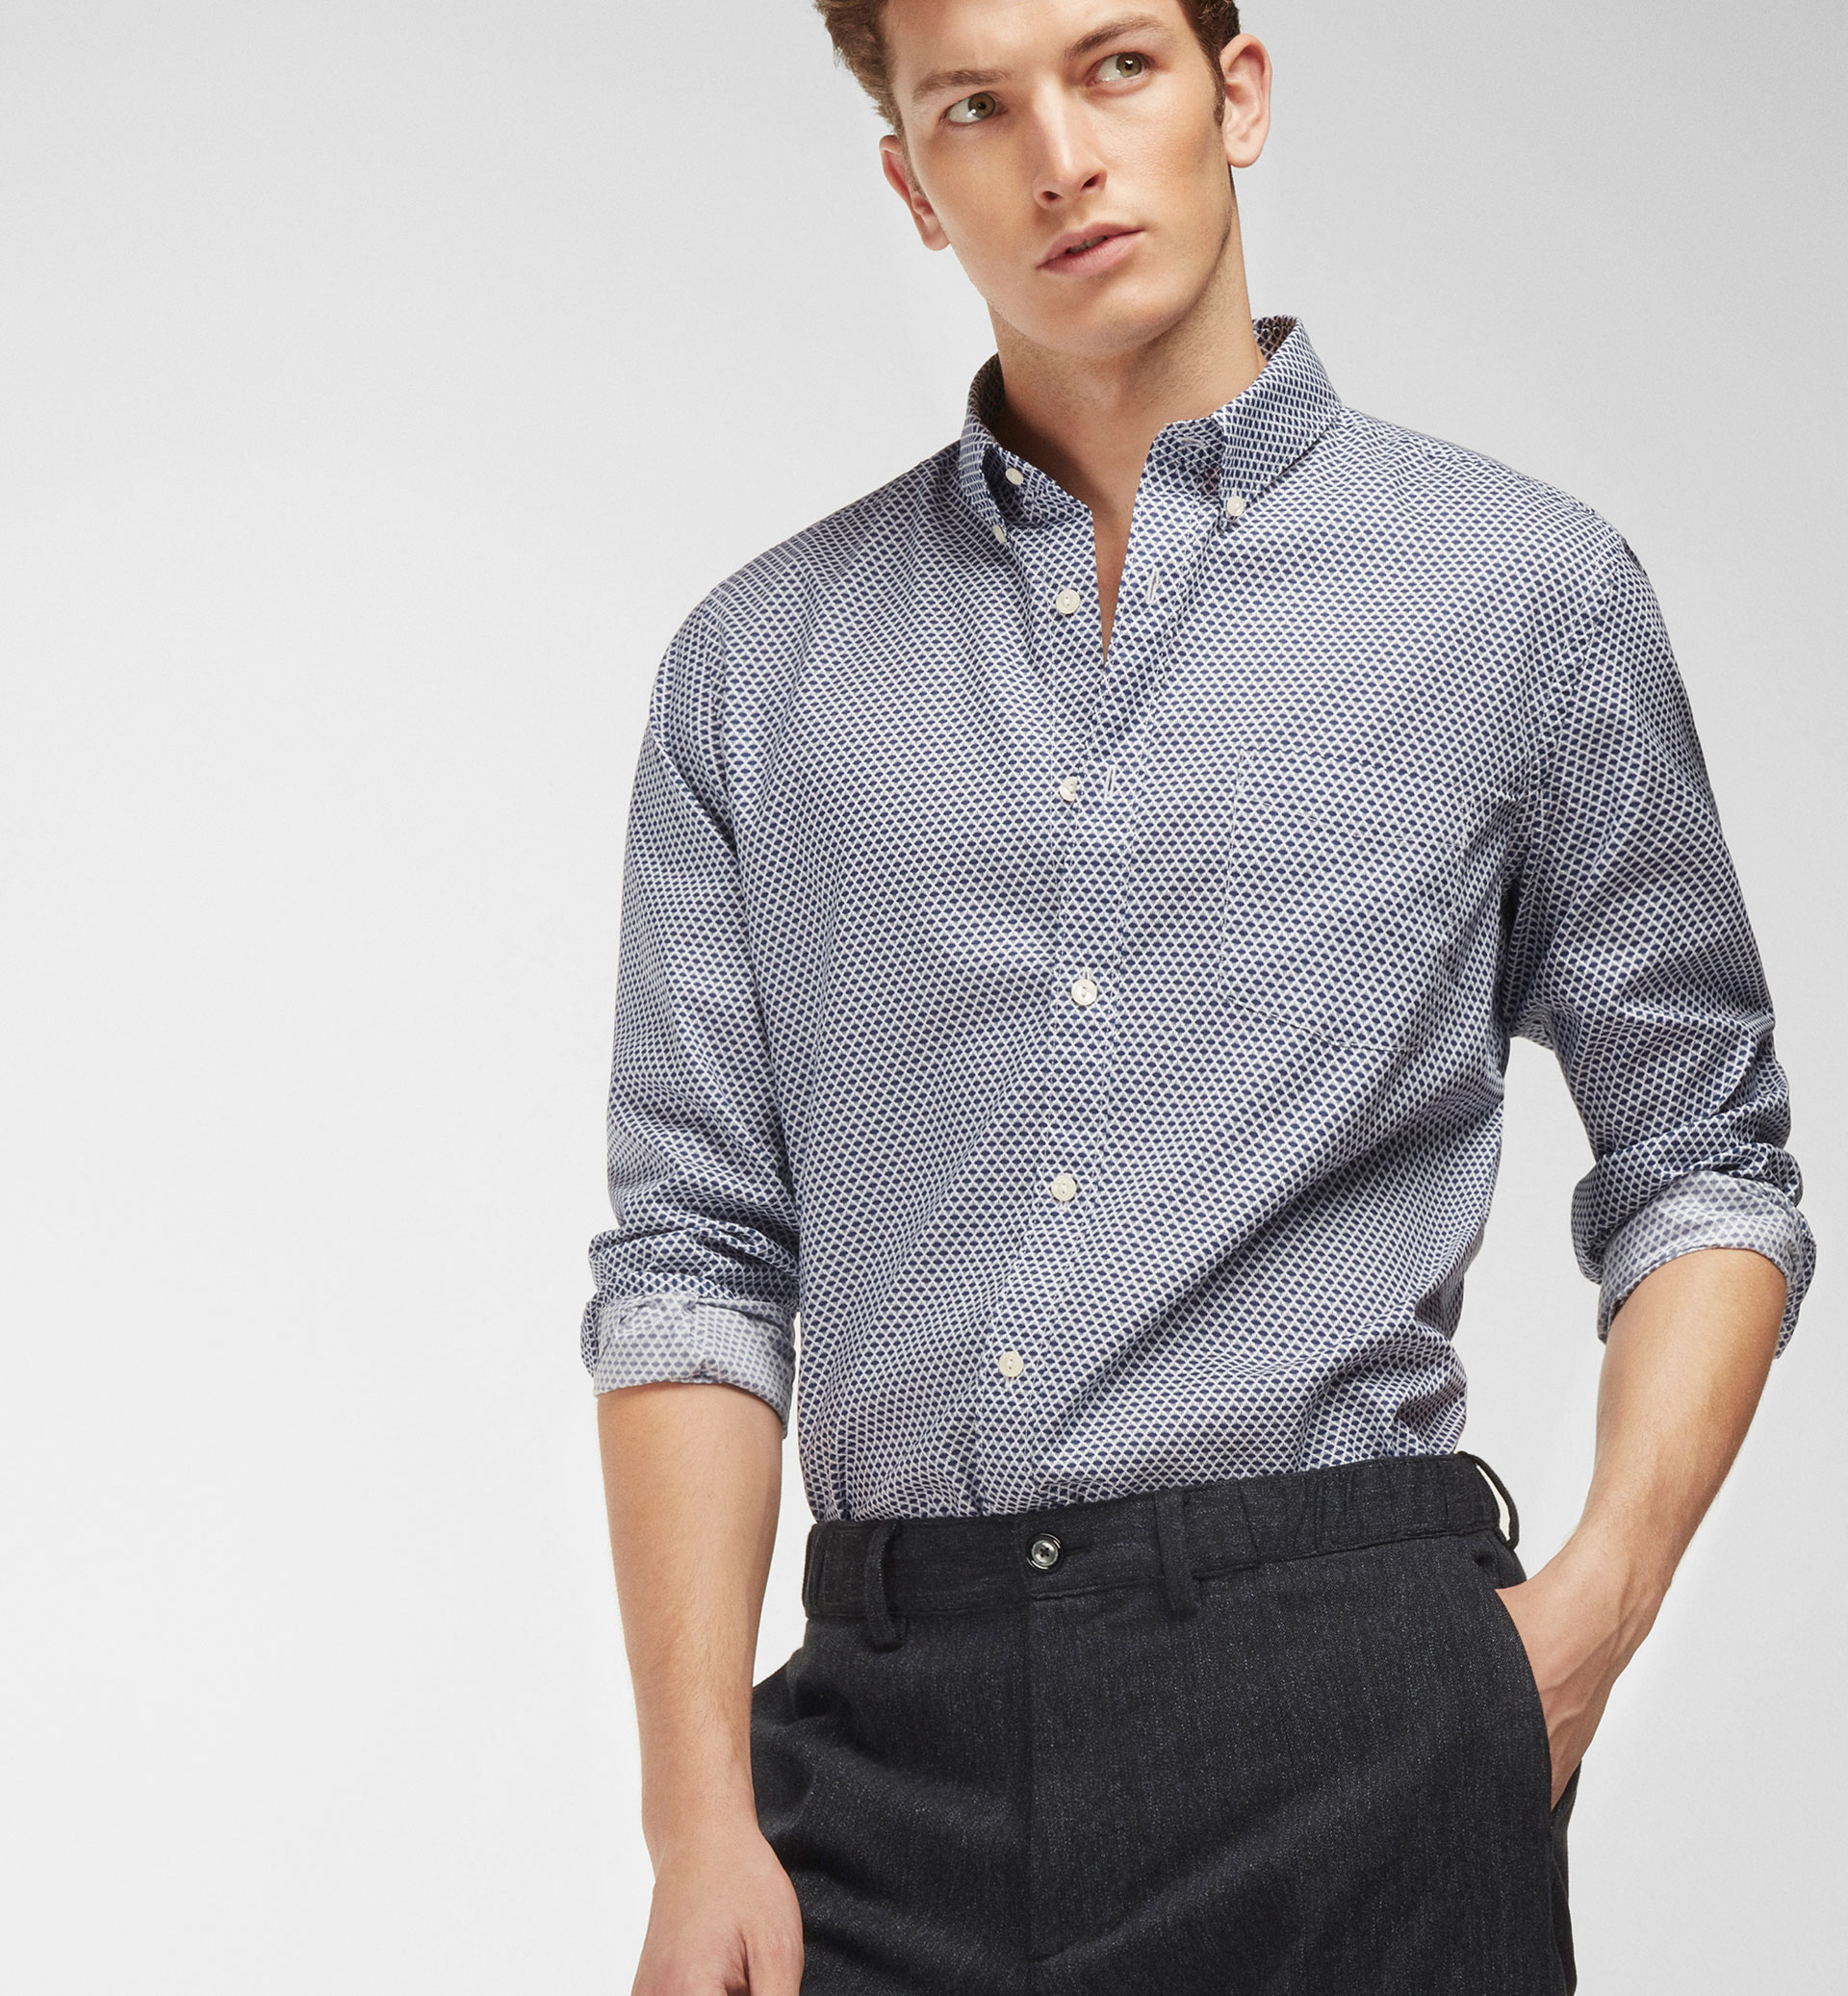 ARGYLE PRINT SLIM-FIT SHIRT